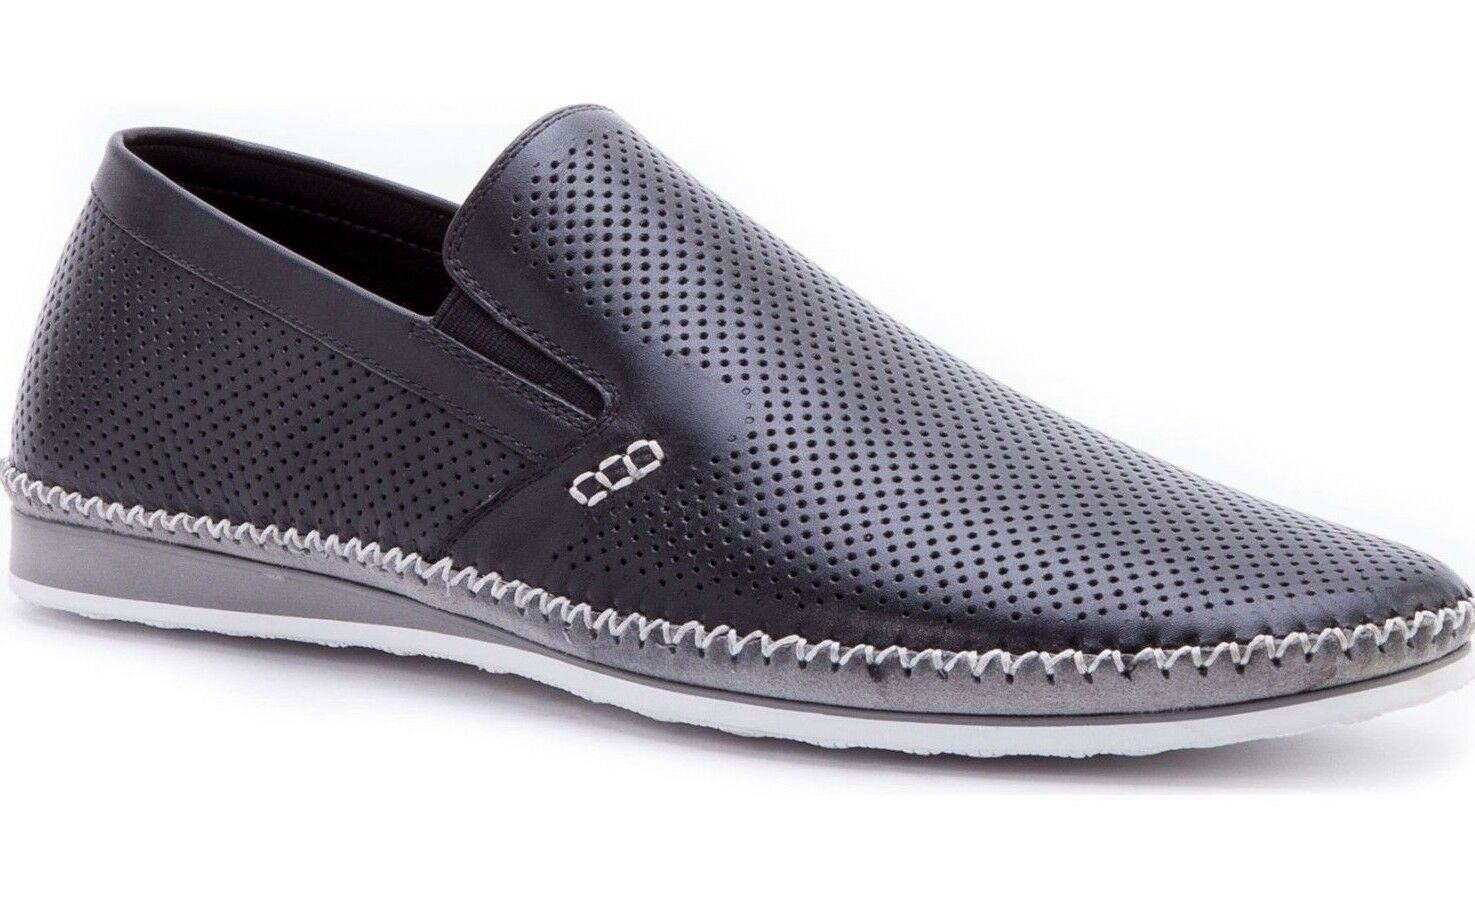 NEW ZANZARA Mens MERZ Slip-On Premium Perforated Leather Shoes